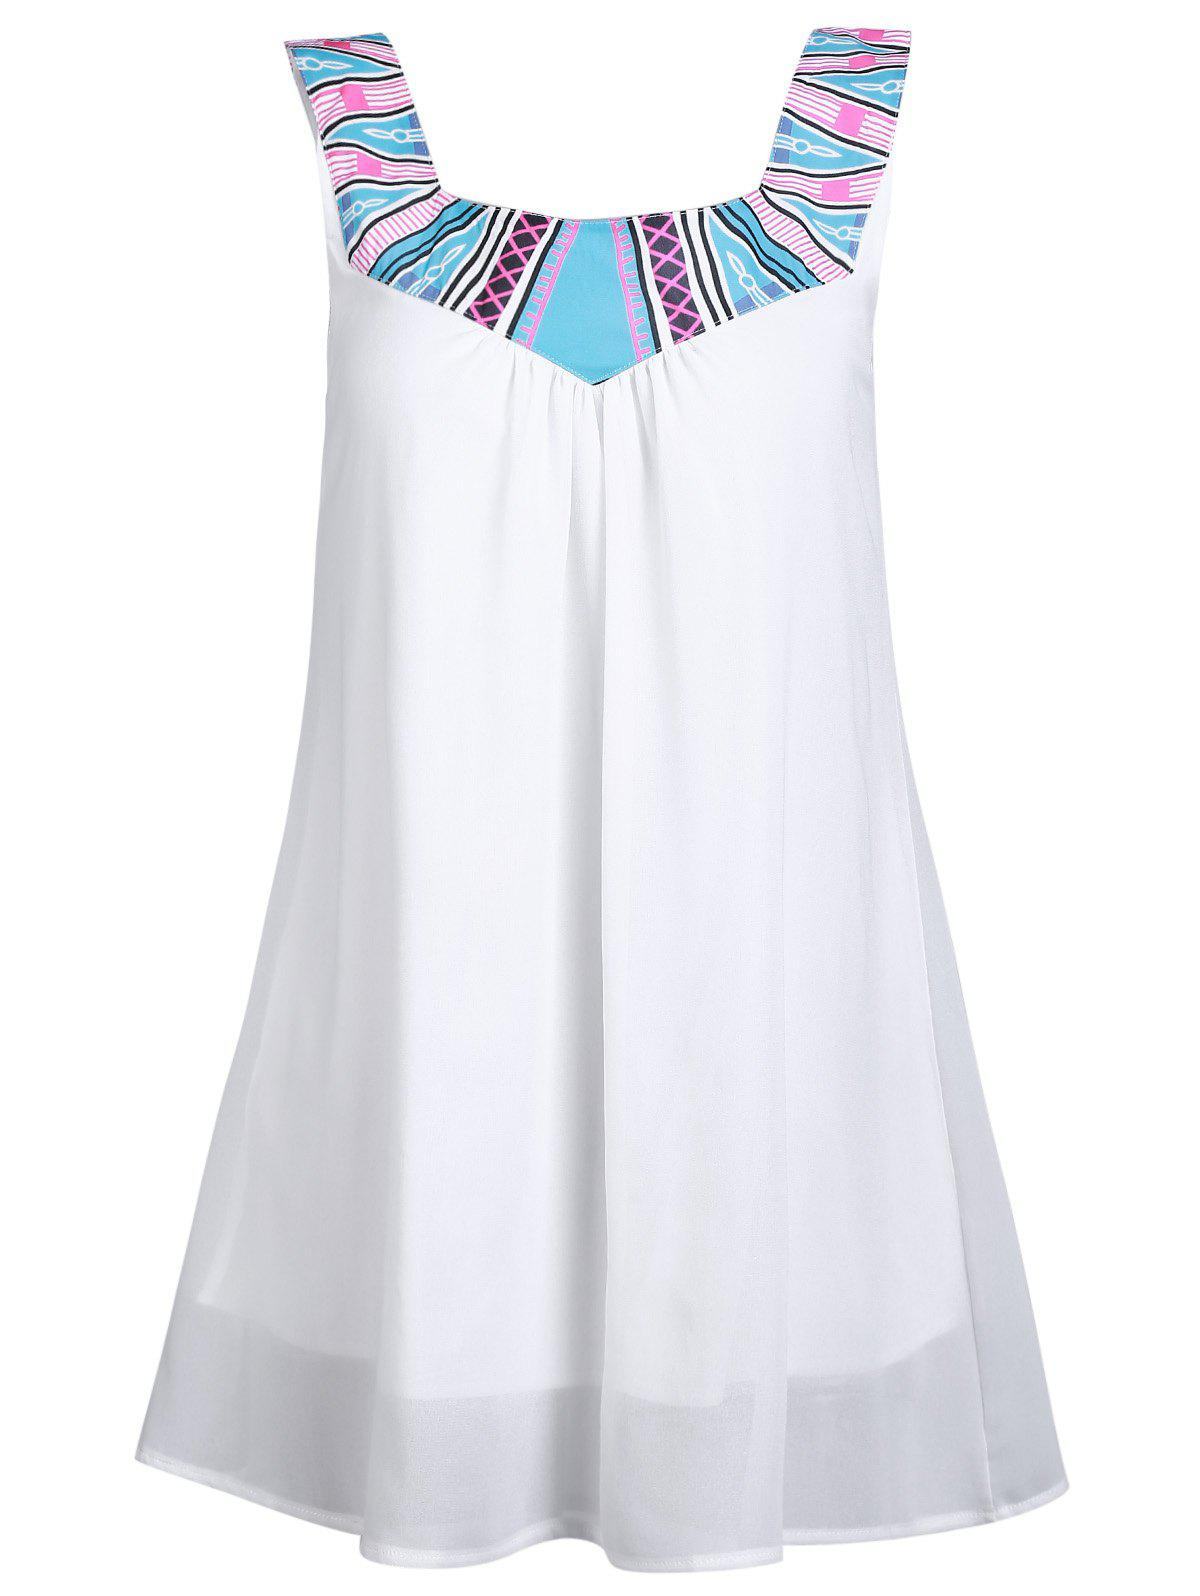 Stylish Square Neck Sleeveless  Loose-Fitting Printed Chiffon Dress For Women - WHITE L